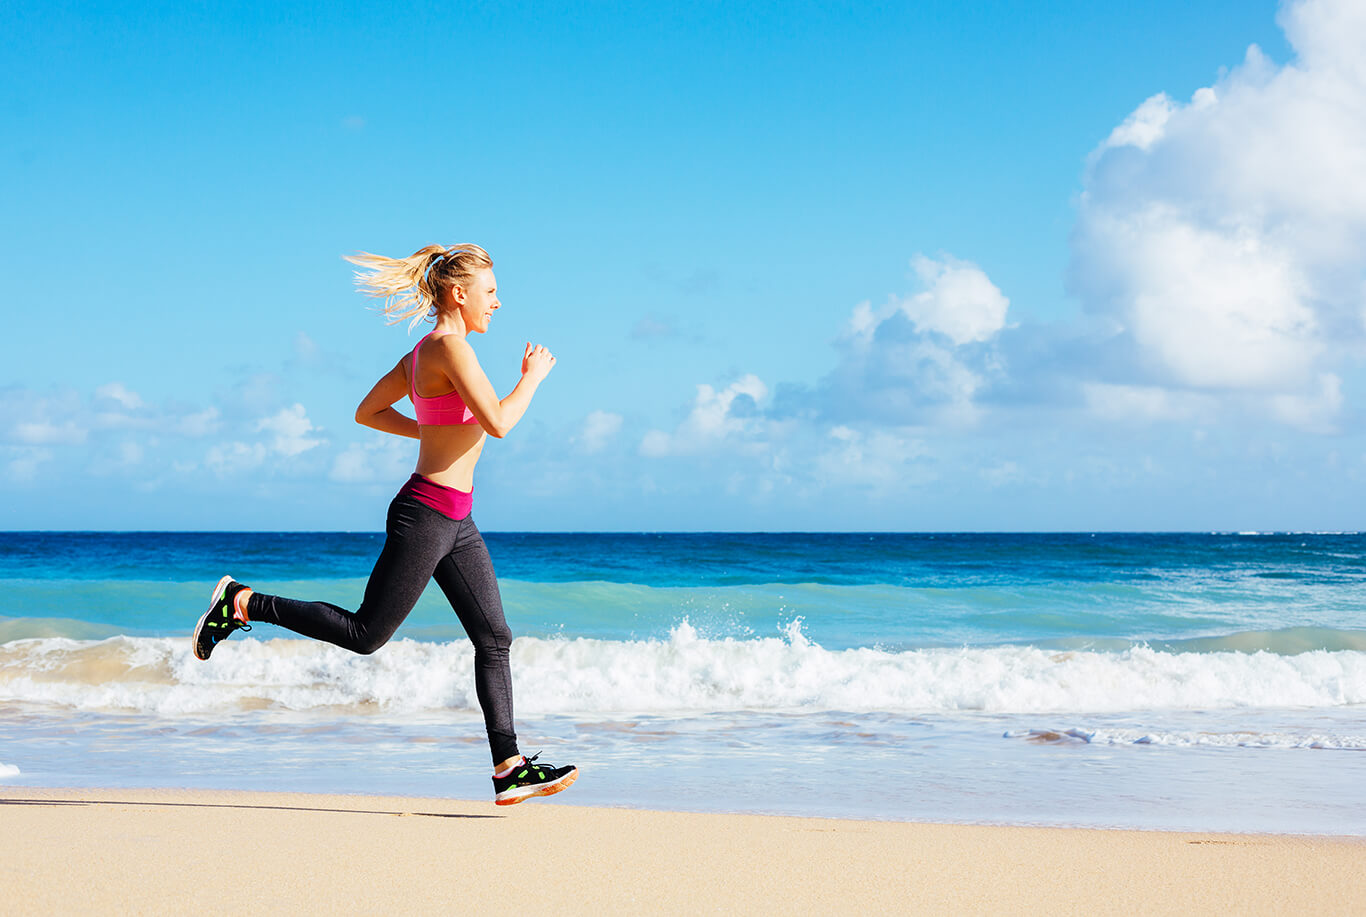 Athletic Fitness Woman Running on the Beach. Female Runner Jogging. Outdoor Workout. Fitness Concept.